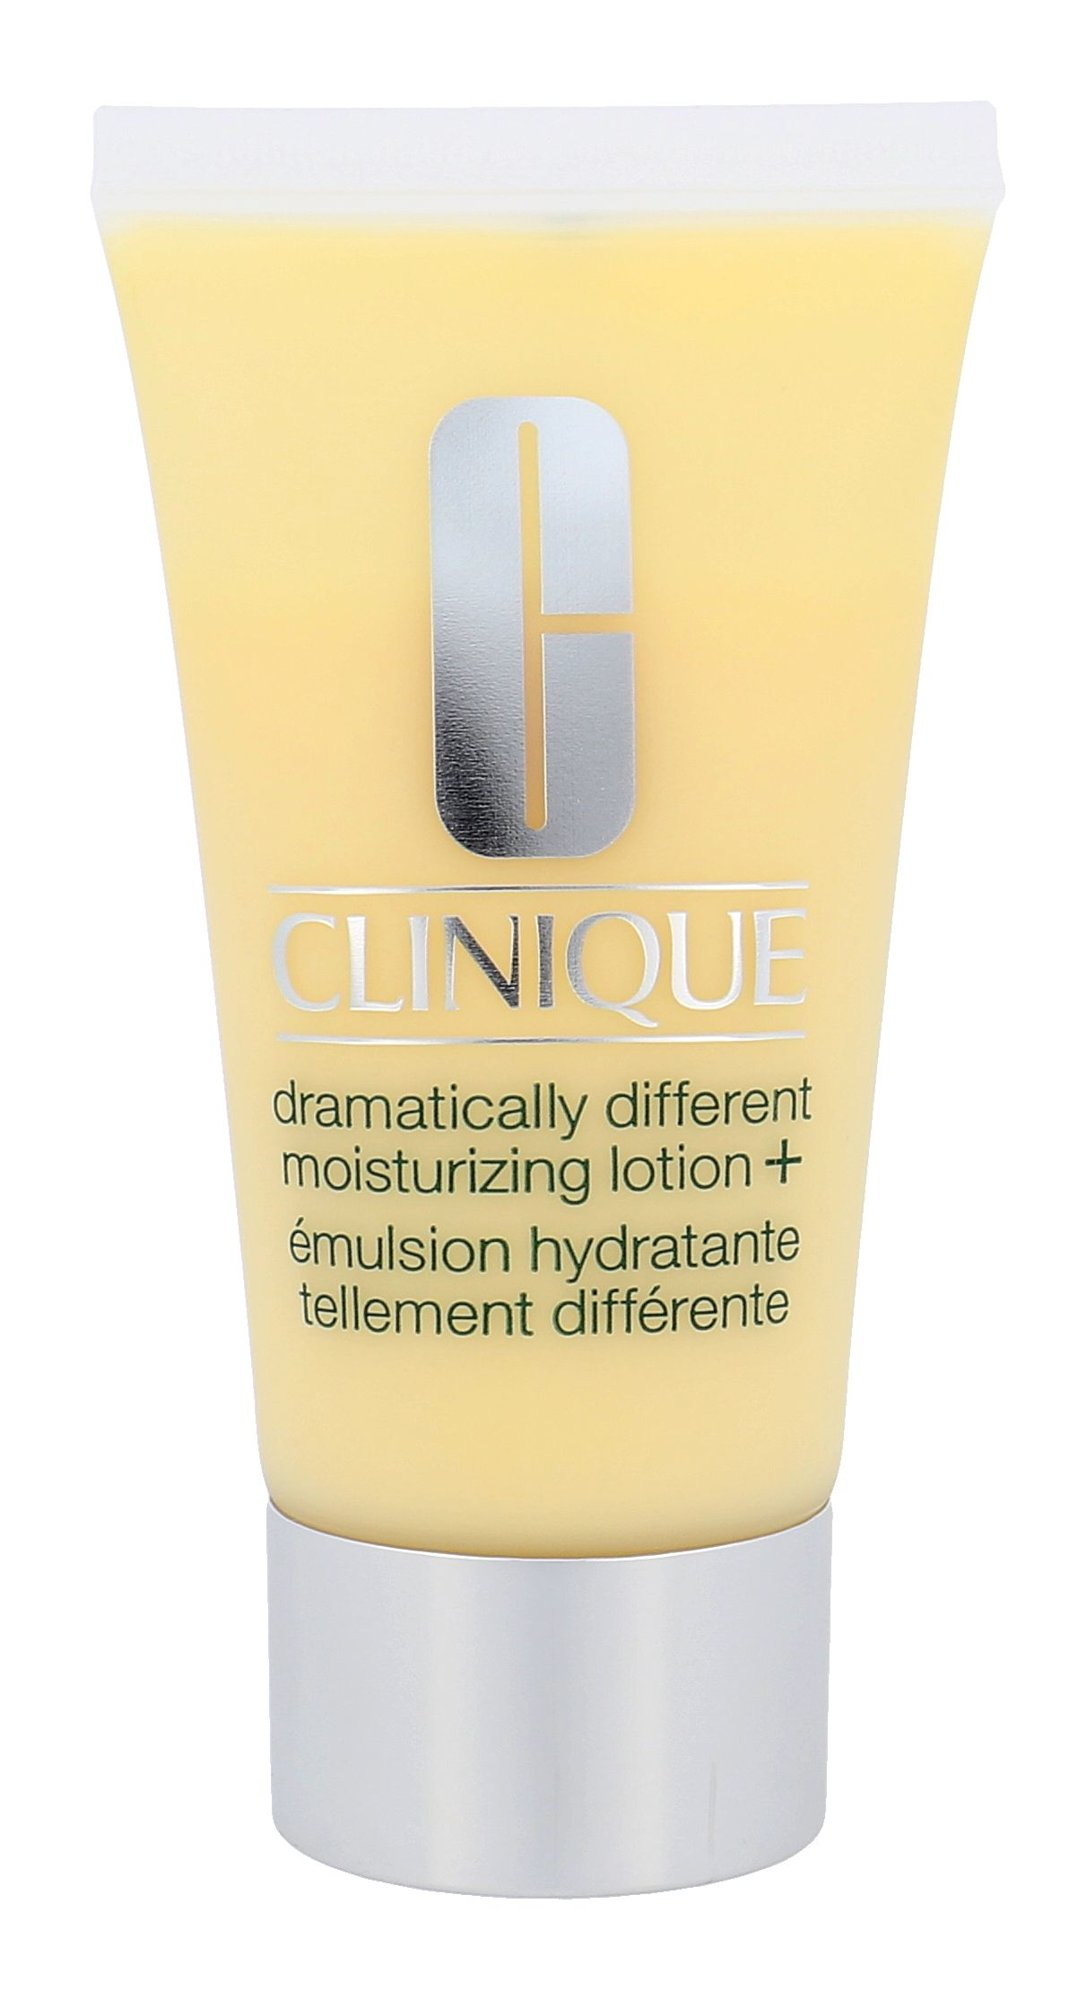 Clinique Dramatically Different Moisturizing Lotion+ Cosmetic 50ml